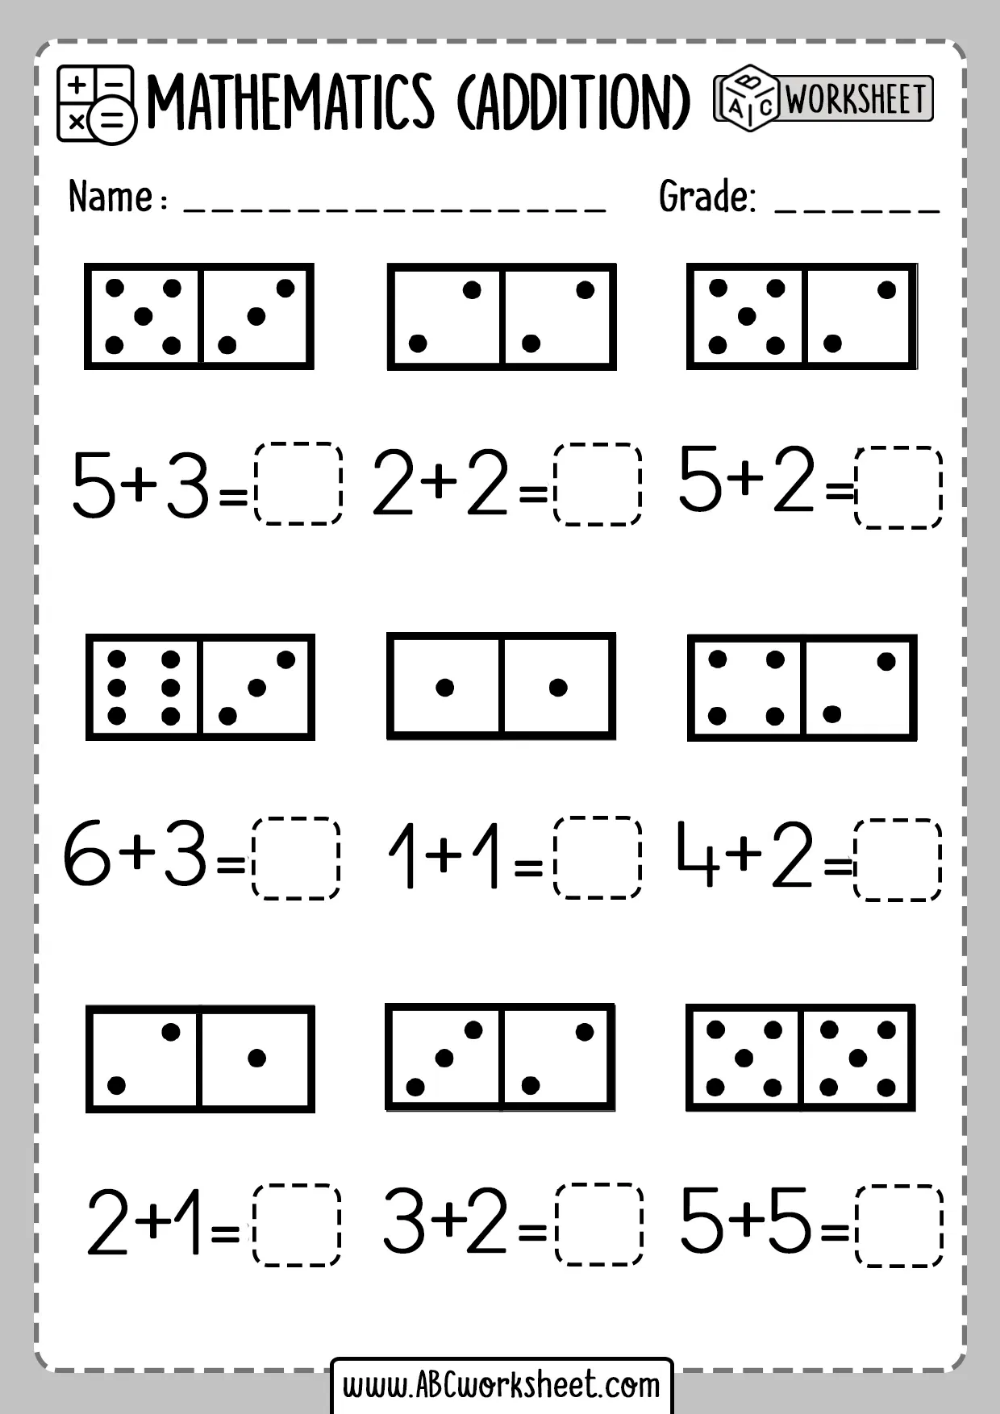 Printable Kindergarten Math Worksheets Domino Addition Ab In 2020 Kindergarten Math Worksheets Addition Kindergarten Addition Worksheets Kindergarten Math Worksheets